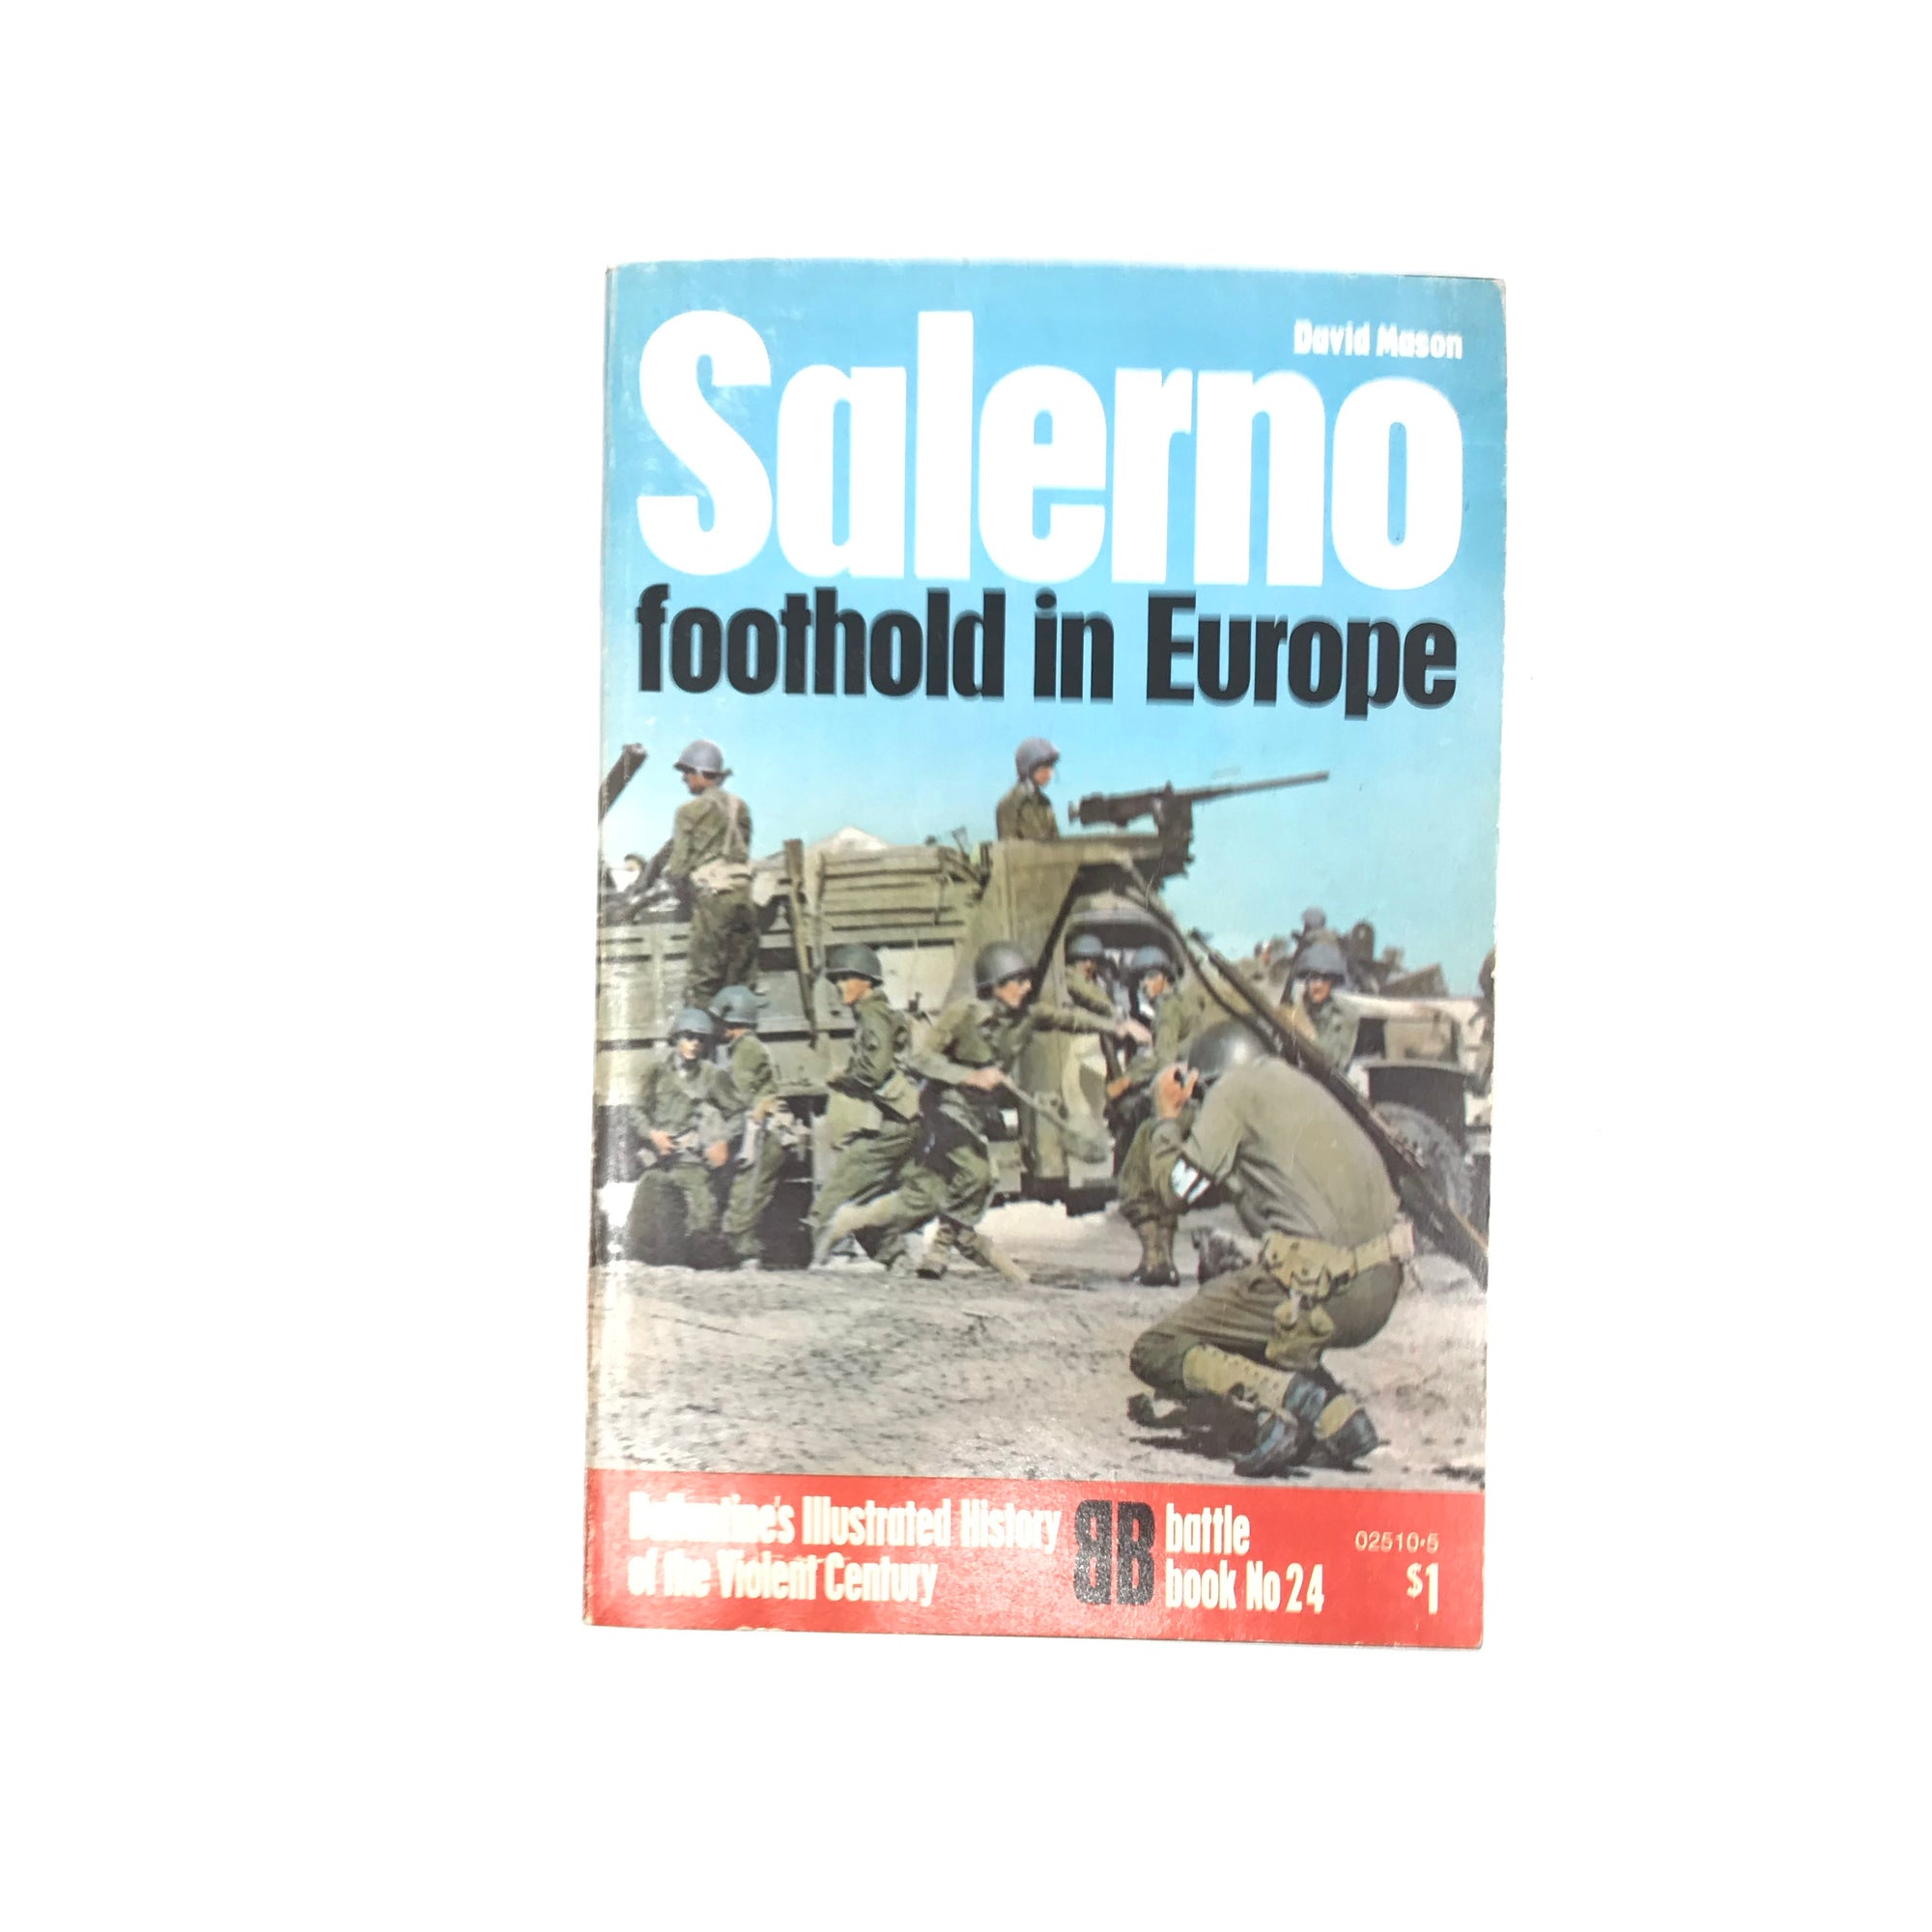 Ballantine's Illustrated History of the Violent Century : Battle Book No24 - Salerno Foothold in Europe (David Mason)